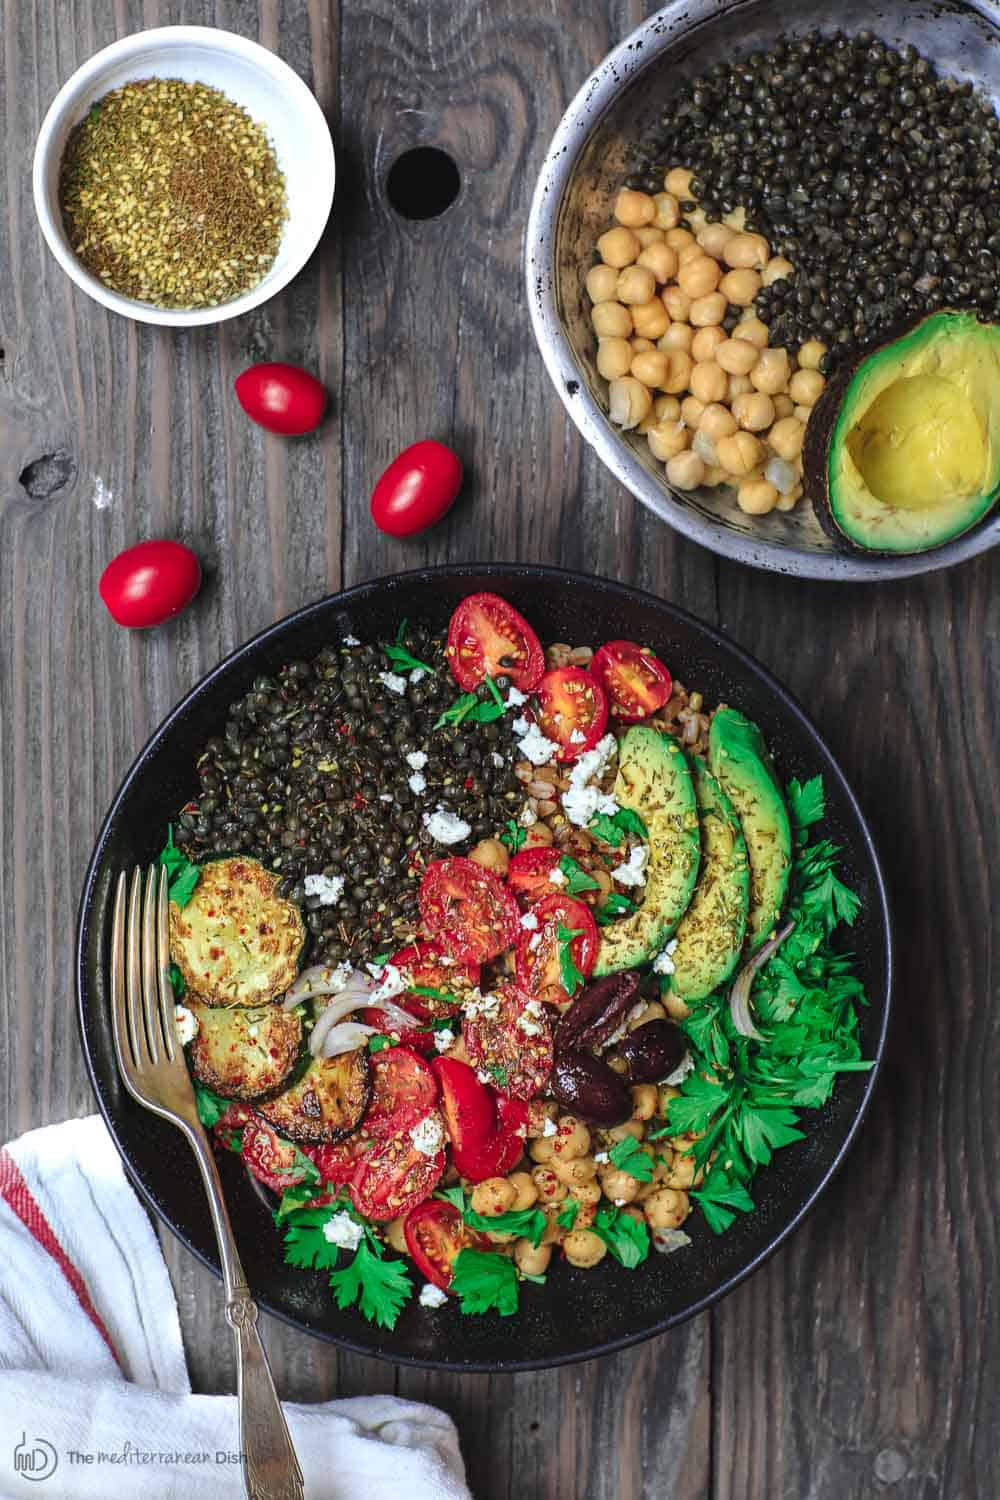 Mediterranean Grain Bowls Recipe | The Mediterranean Dish. Healthy, protein-packed grain bowls with lentils and chickpeas. Packed with Mediterranean flavors. A quick and easy weeknight dinner! From TheMediterraneanDish.com #grainbowls #dinnerbowls #mediterraneandiet #mediterraneanrecipes #chickpearecipes #chickpeas #lentilrecipes #lentil #halfcuphabit #justaddpulses #eatpulses